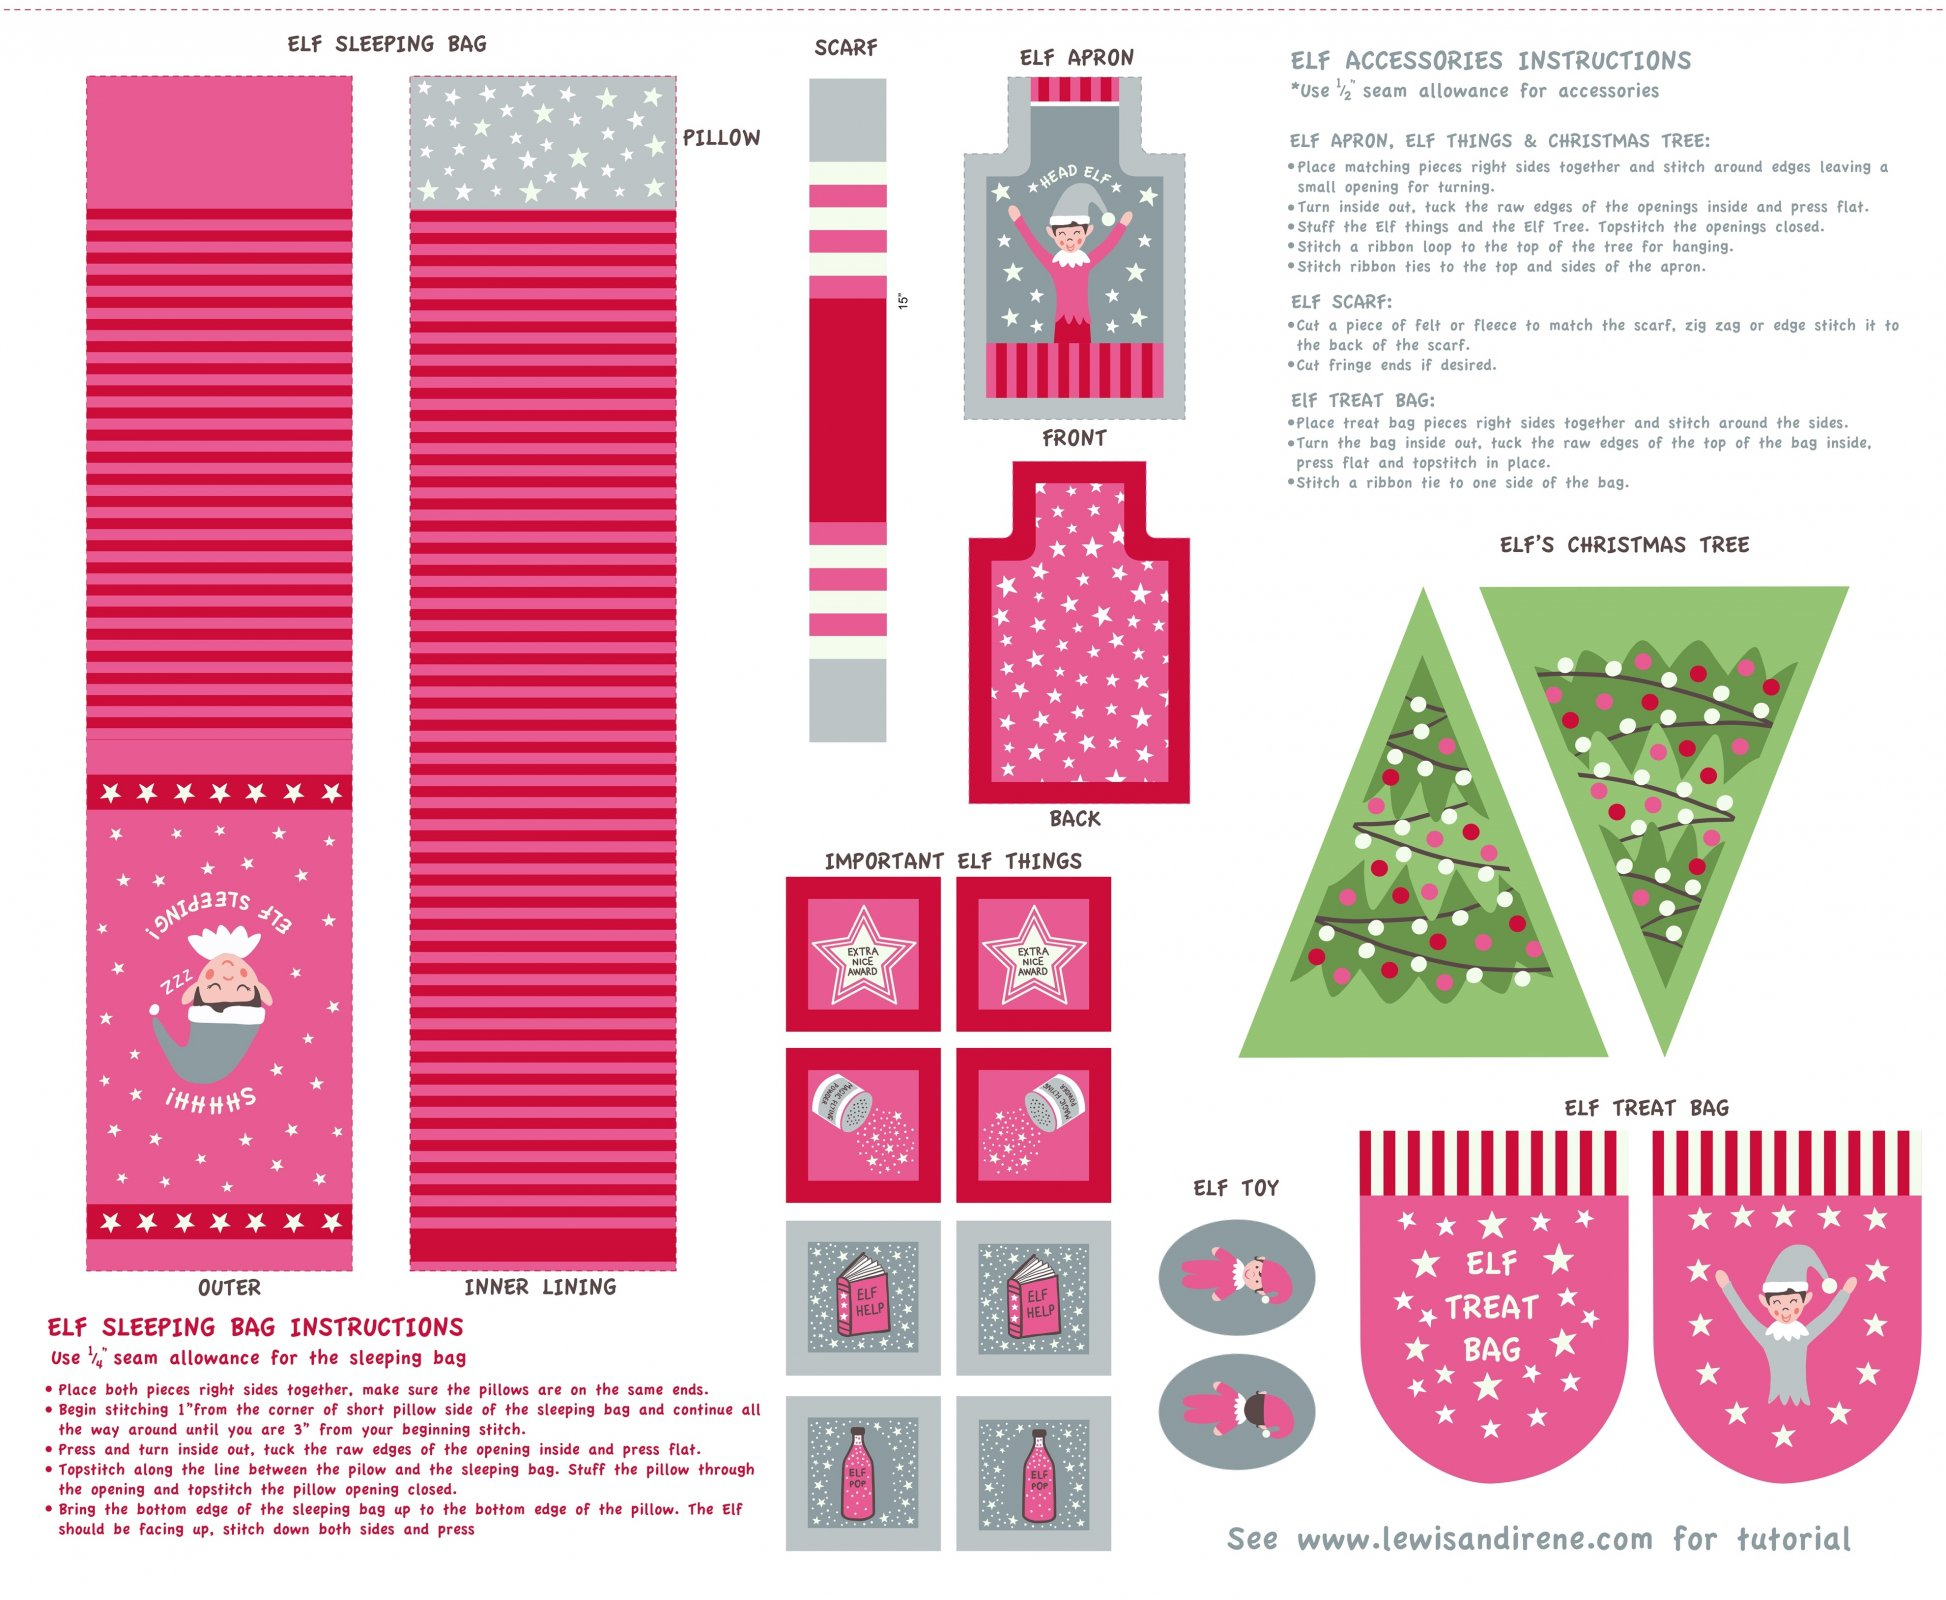 Christmas Glow - Elf Accessories by Lewis & Irene 30% OFF!